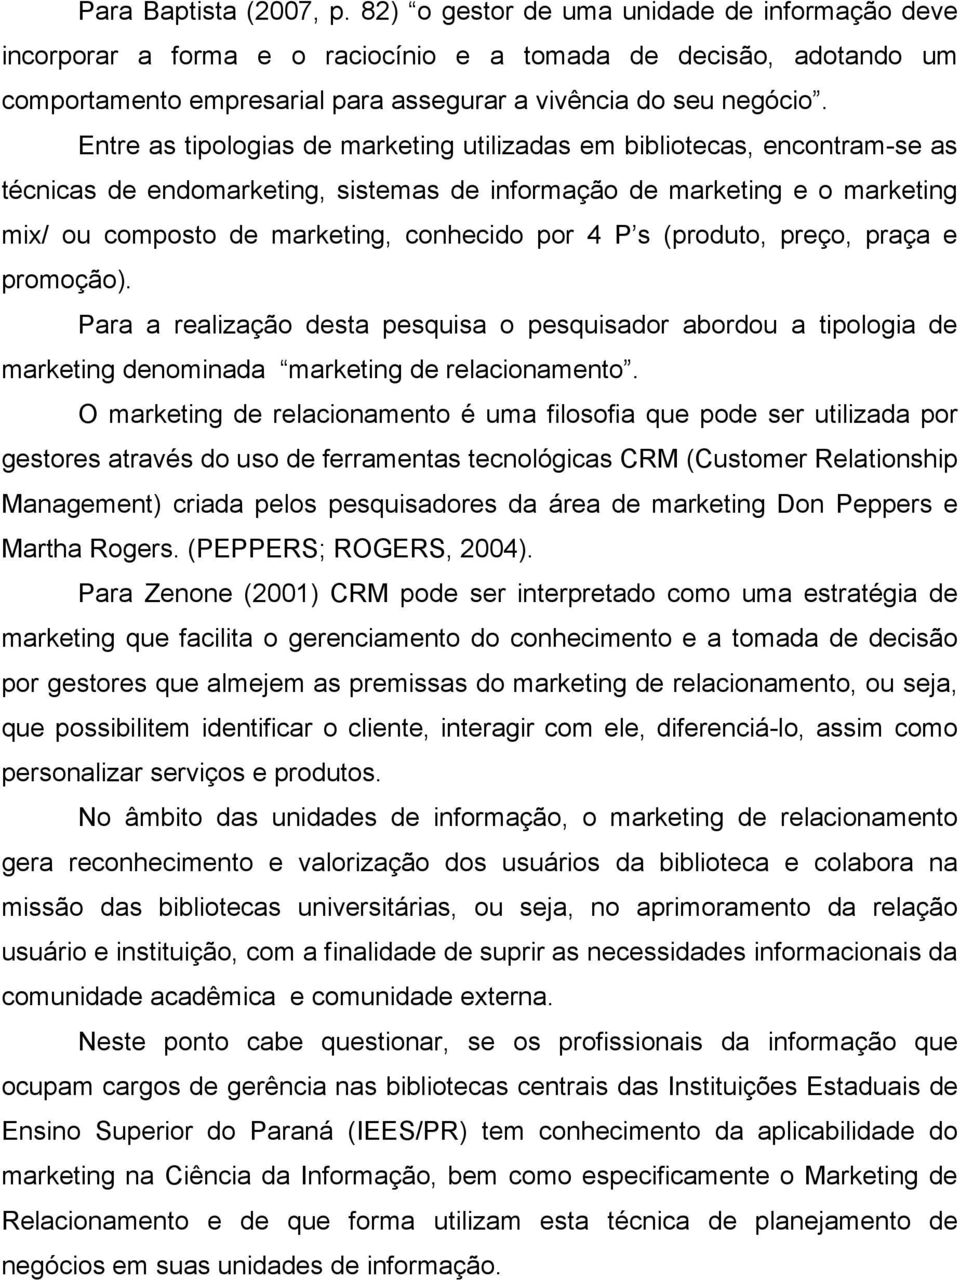 Entre as tipologias de marketing utilizadas em bibliotecas, encontram-se as técnicas de endomarketing, sistemas de informação de marketing e o marketing mix/ ou composto de marketing, conhecido por 4